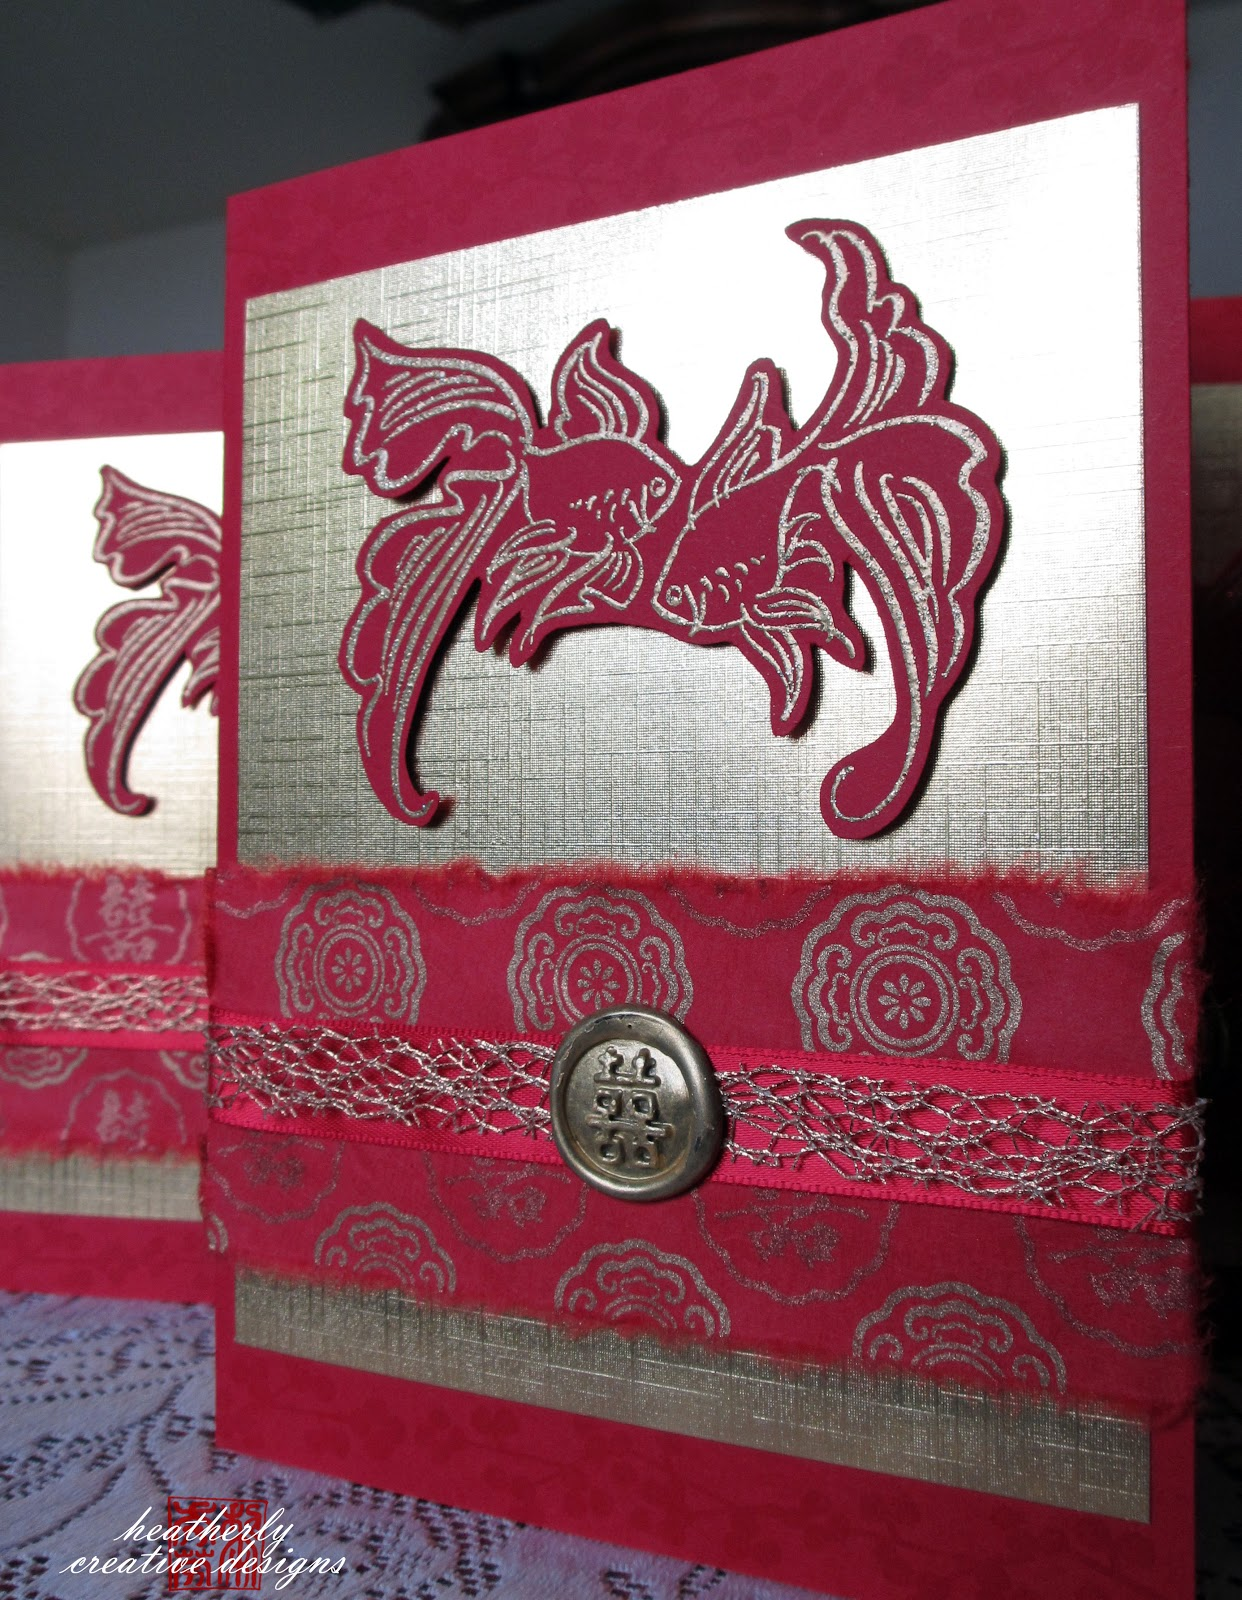 Chinese Wedding Invitations | heatherly creative designs